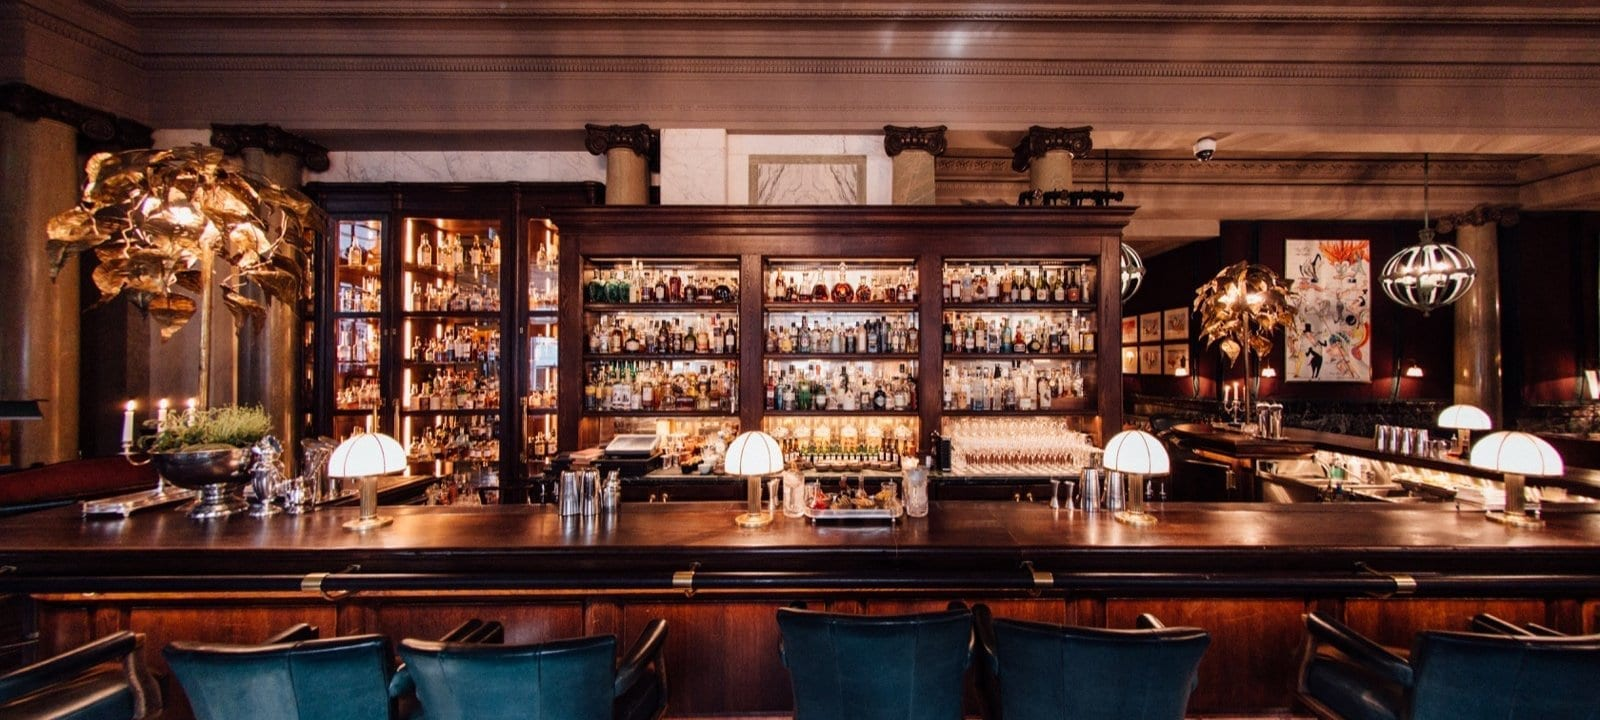 Scarfes Bar at the Rosewood Hotel